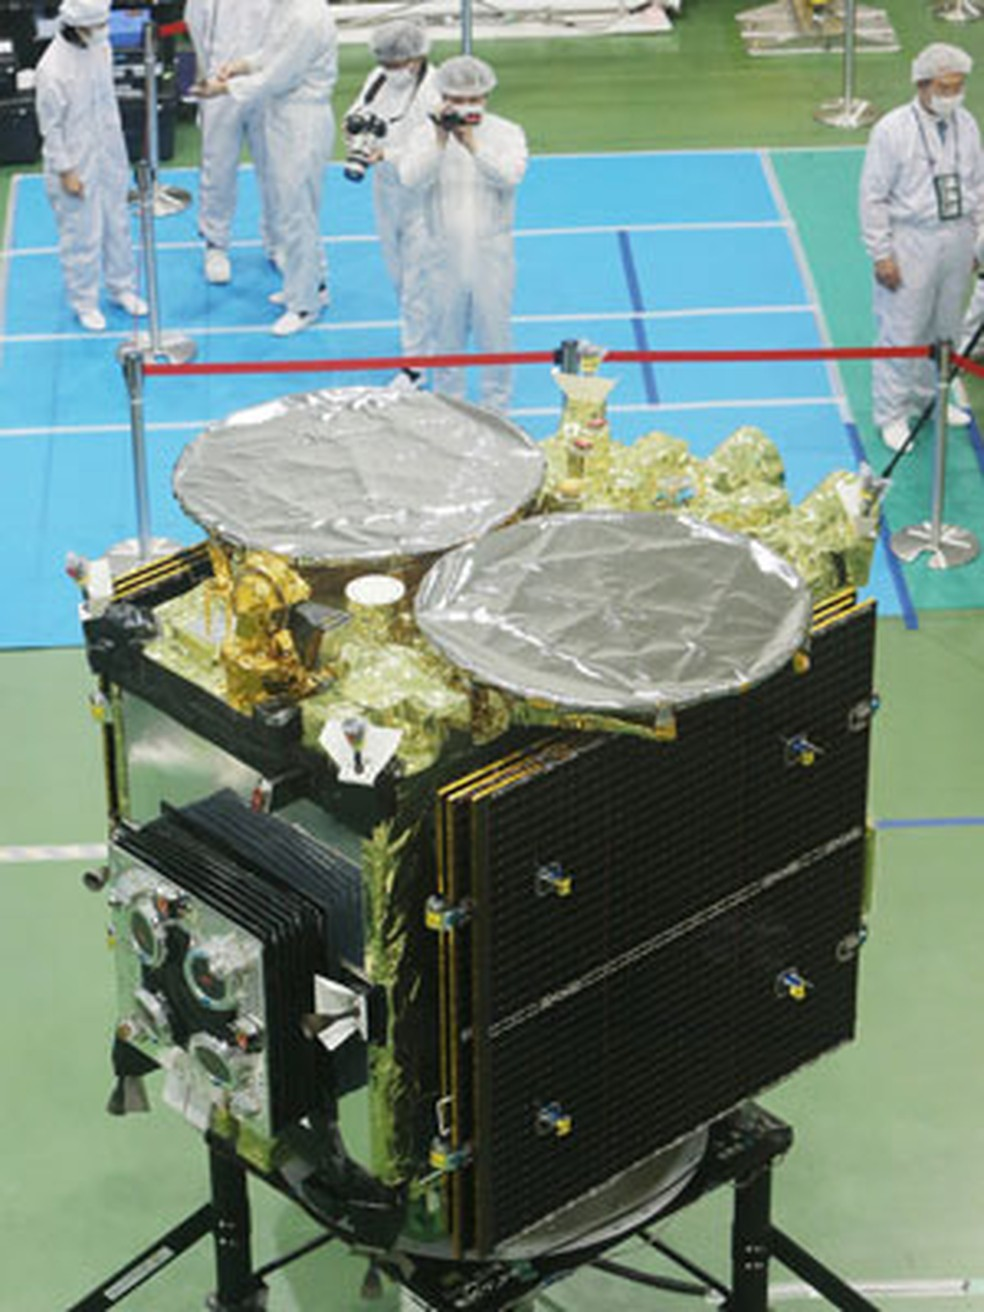 A sonda espacial Hayabusa-2 (Foto: Jiji Press / AFP Photo)